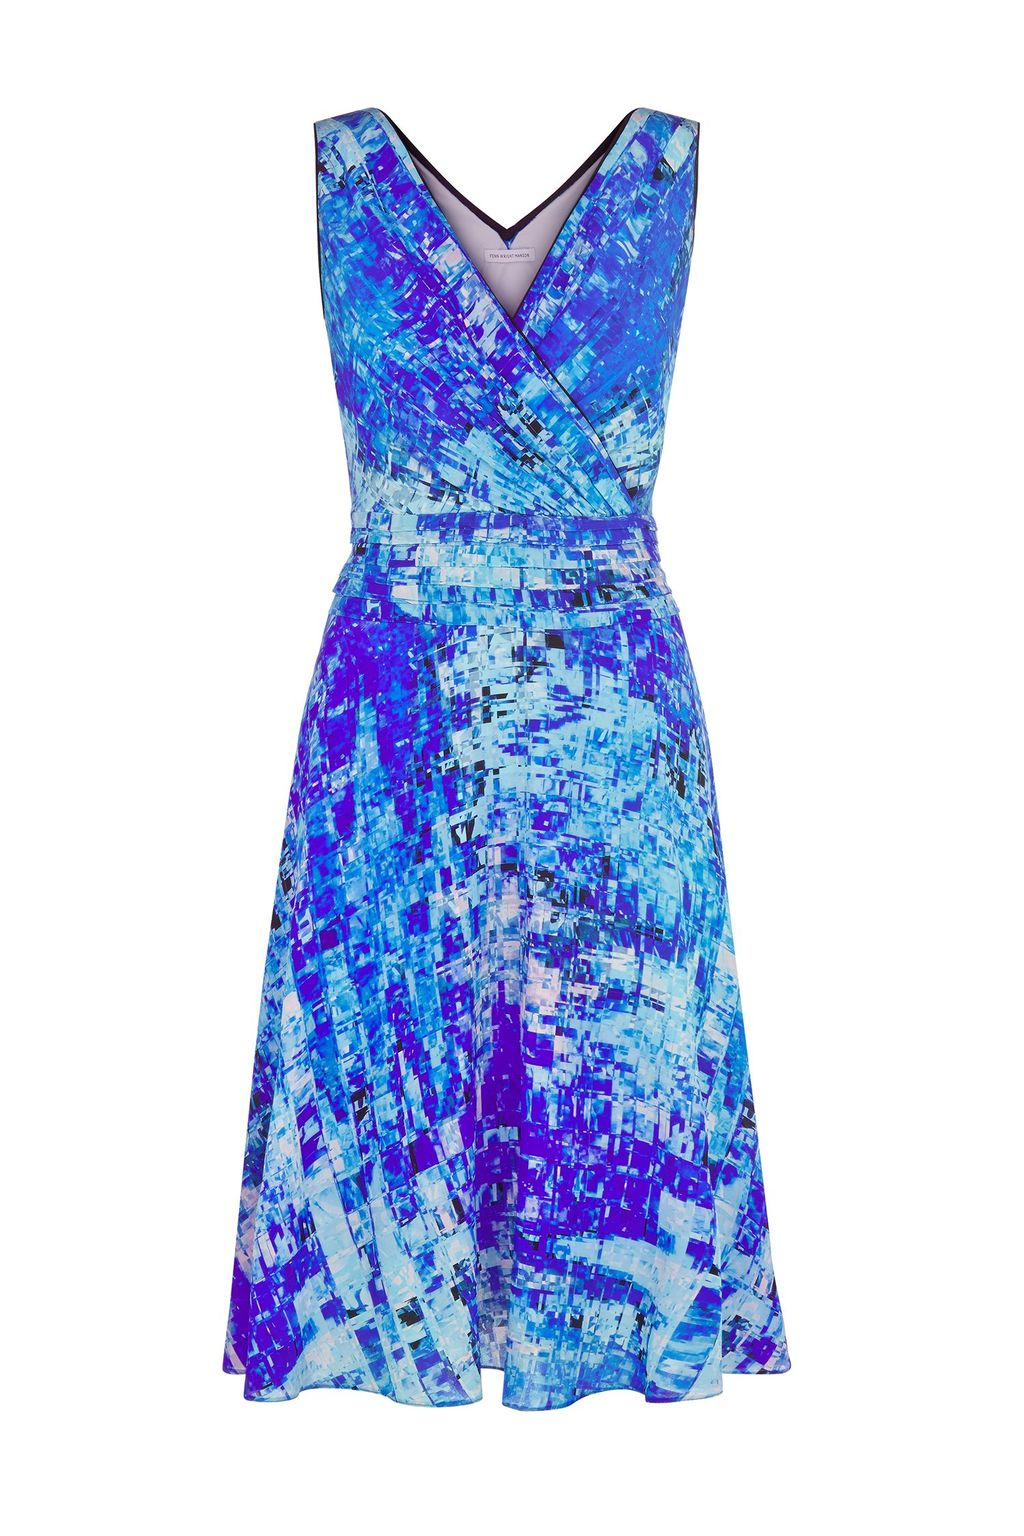 Cosmos Dress, Blue - style: faux wrap/wrap; neckline: v-neck; sleeve style: sleeveless; predominant colour: diva blue; secondary colour: pale blue; occasions: evening, occasion; length: on the knee; fit: fitted at waist & bust; fibres: silk - 100%; sleeve length: sleeveless; texture group: silky - light; pattern type: fabric; pattern: patterned/print; season: s/s 2015; wardrobe: event